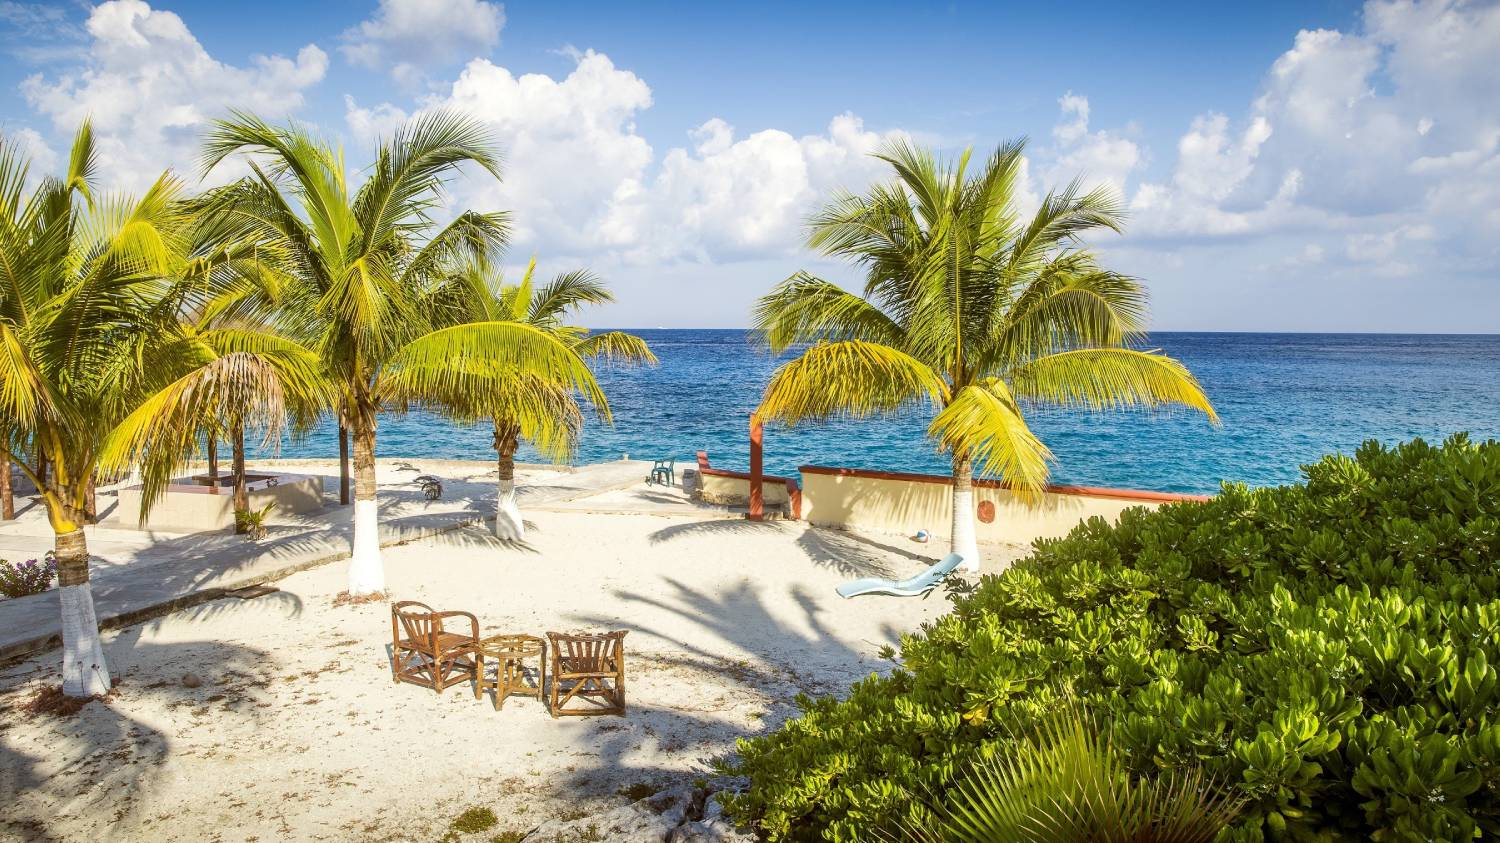 Cozumel - Things To Do In Cancun